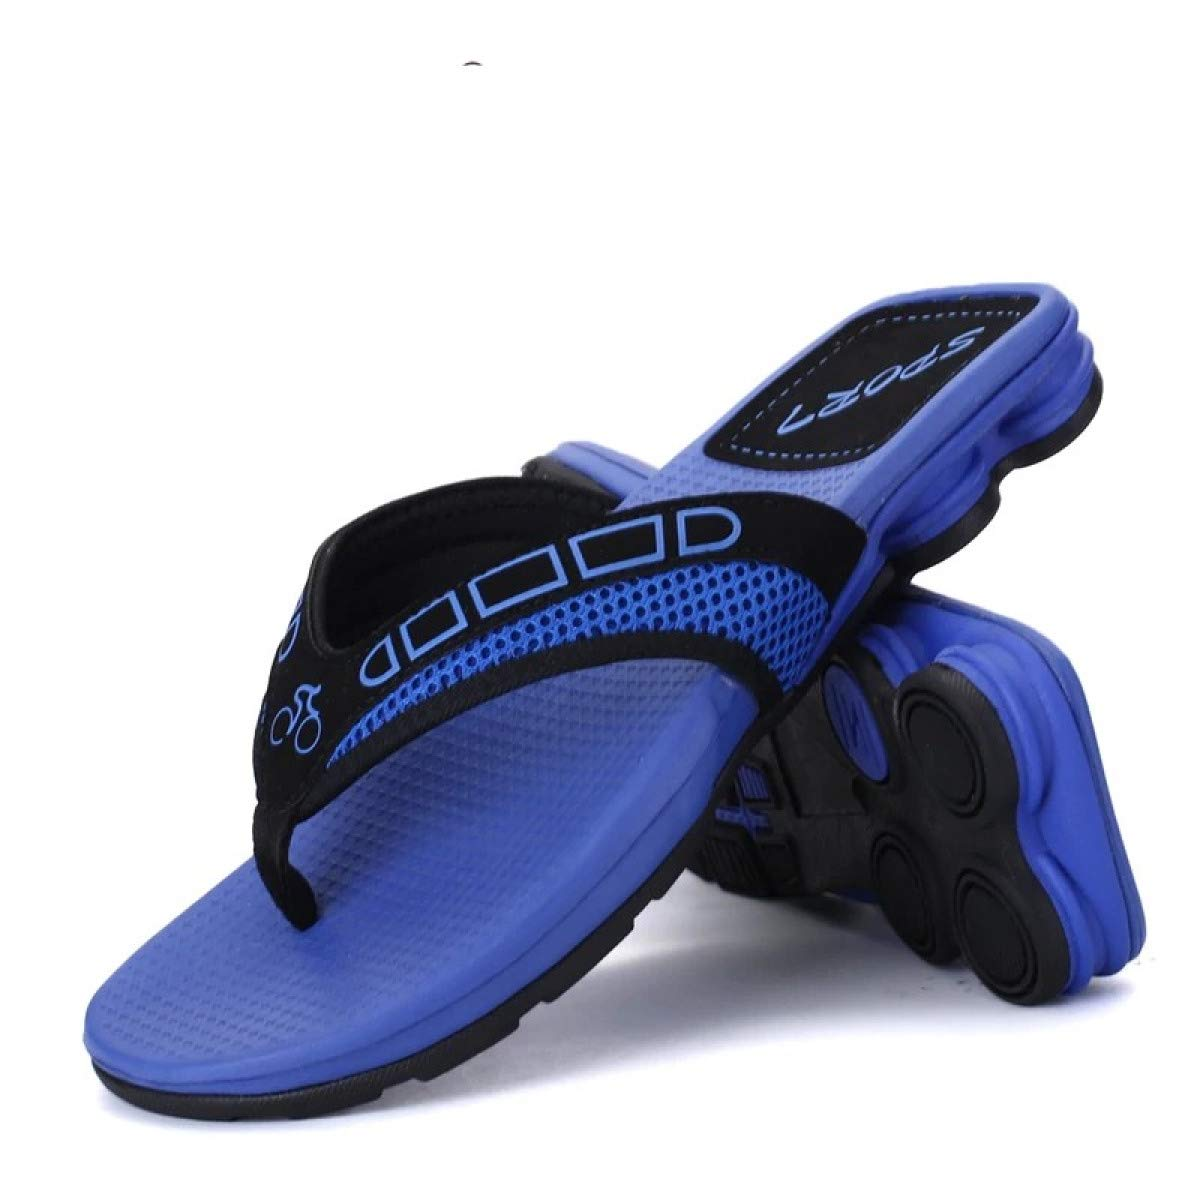 Mens Slippers Summer Slippers Flip Flop Shoes Sandals Beach Water Shoes Slides Shoes